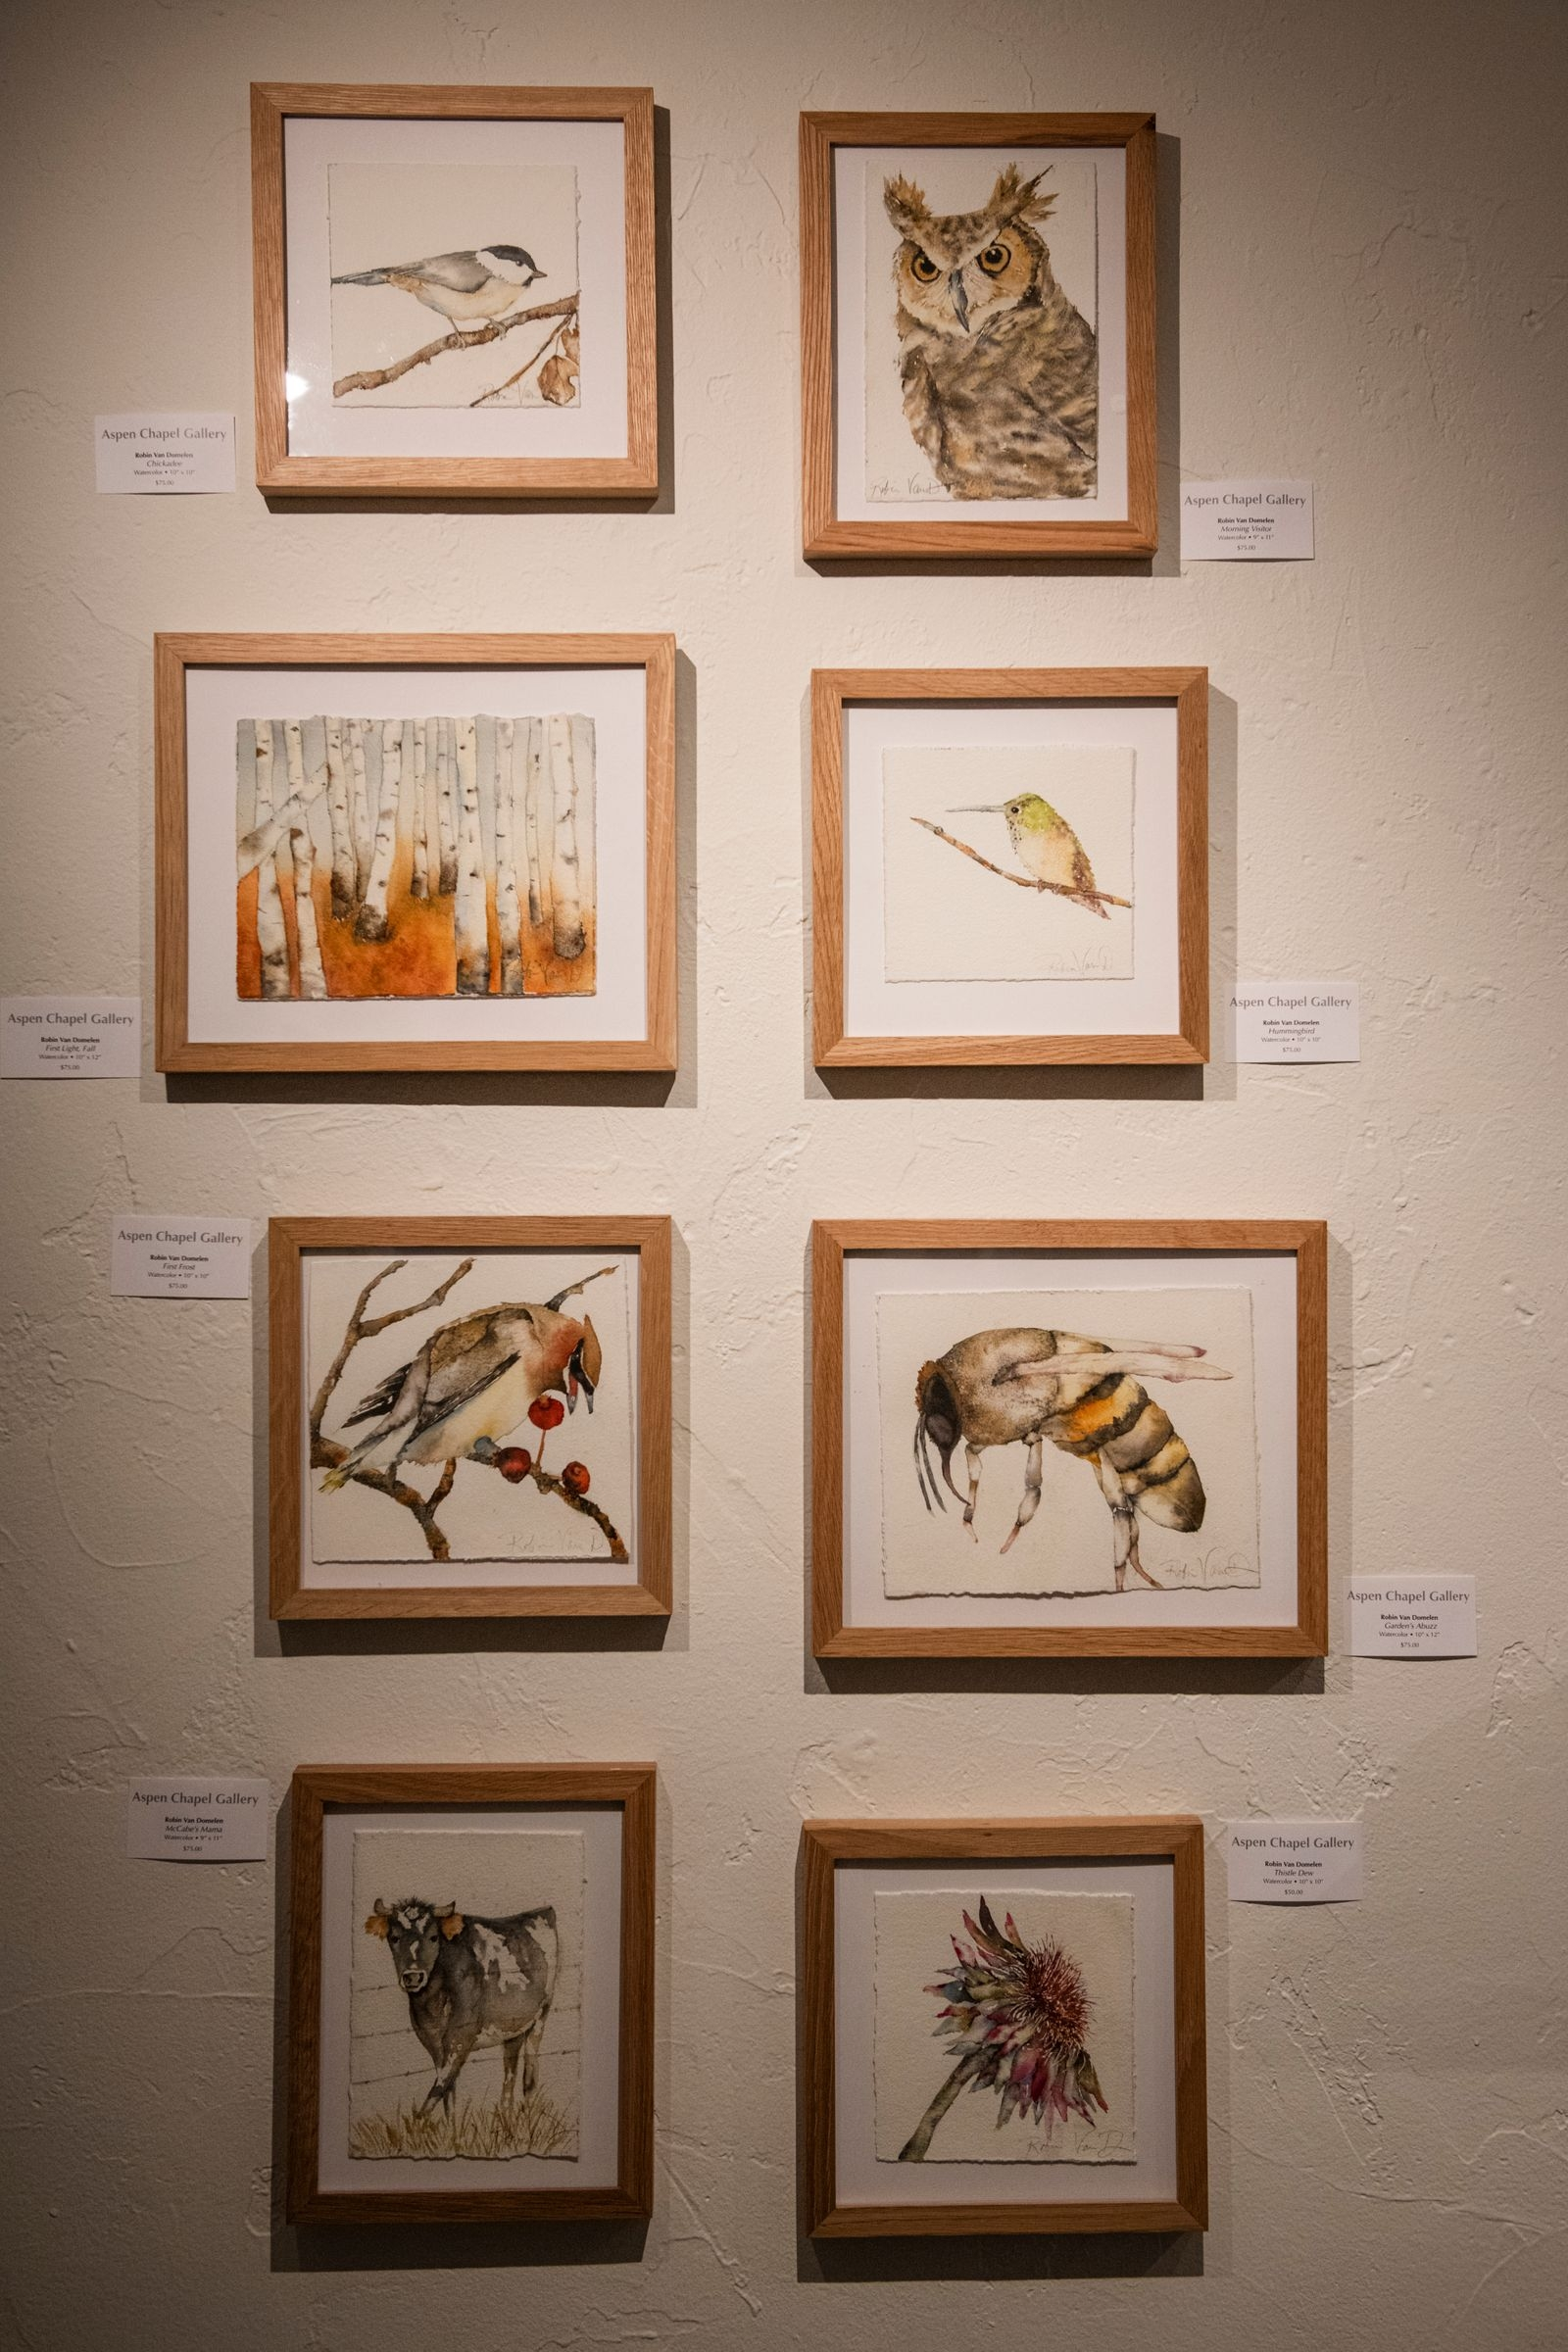 Watercolor prints by Robin Van Domelen hang in the Aspen Chapel Gallery for the Small Wonders holiday show and sale on Tuesday, Nov. 17, 2020. (Kelsey Brunner/The Aspen Times)